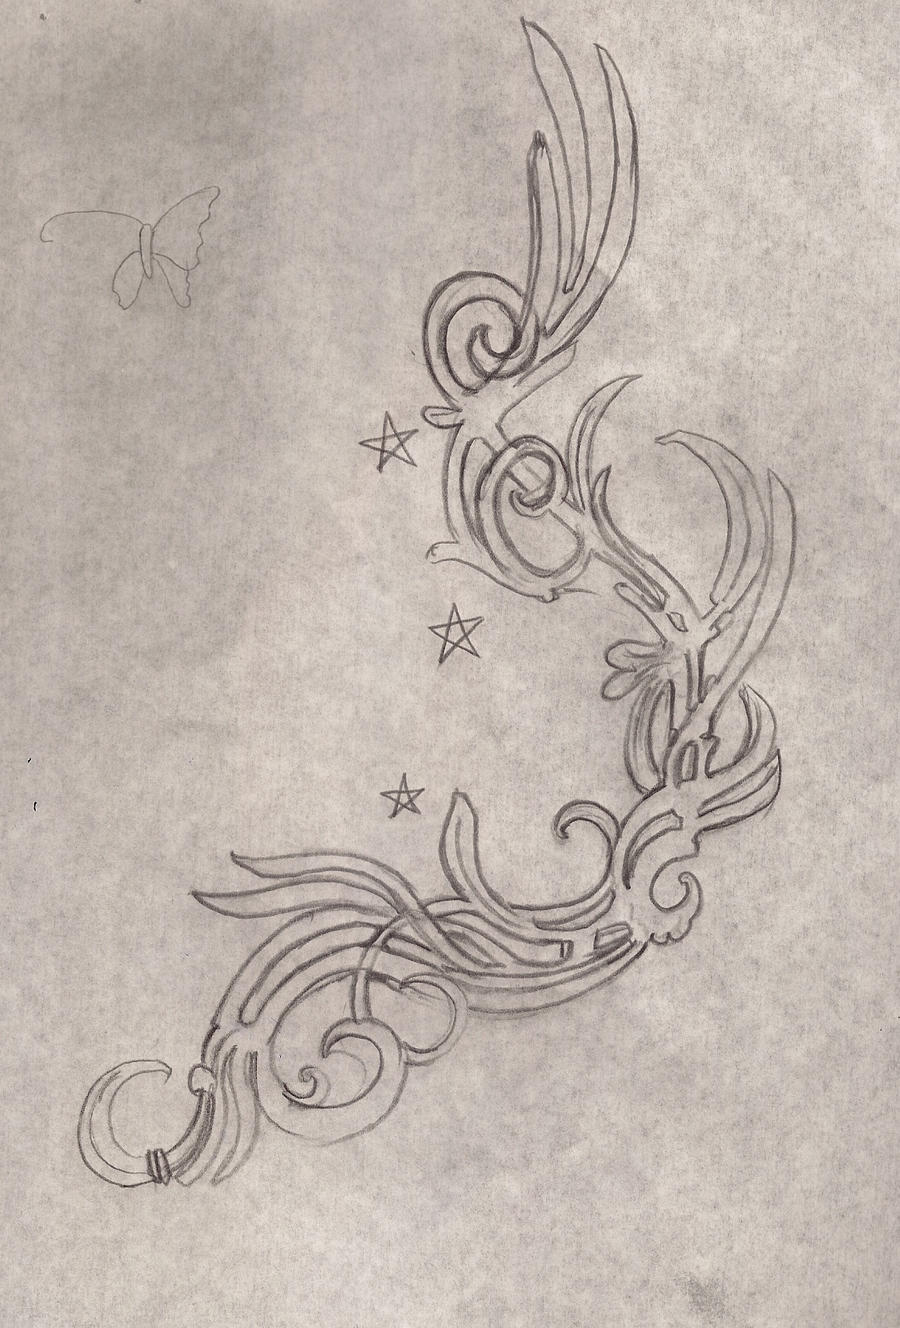 ankle art nouveau in pencil by posvibes on deviantart. Black Bedroom Furniture Sets. Home Design Ideas